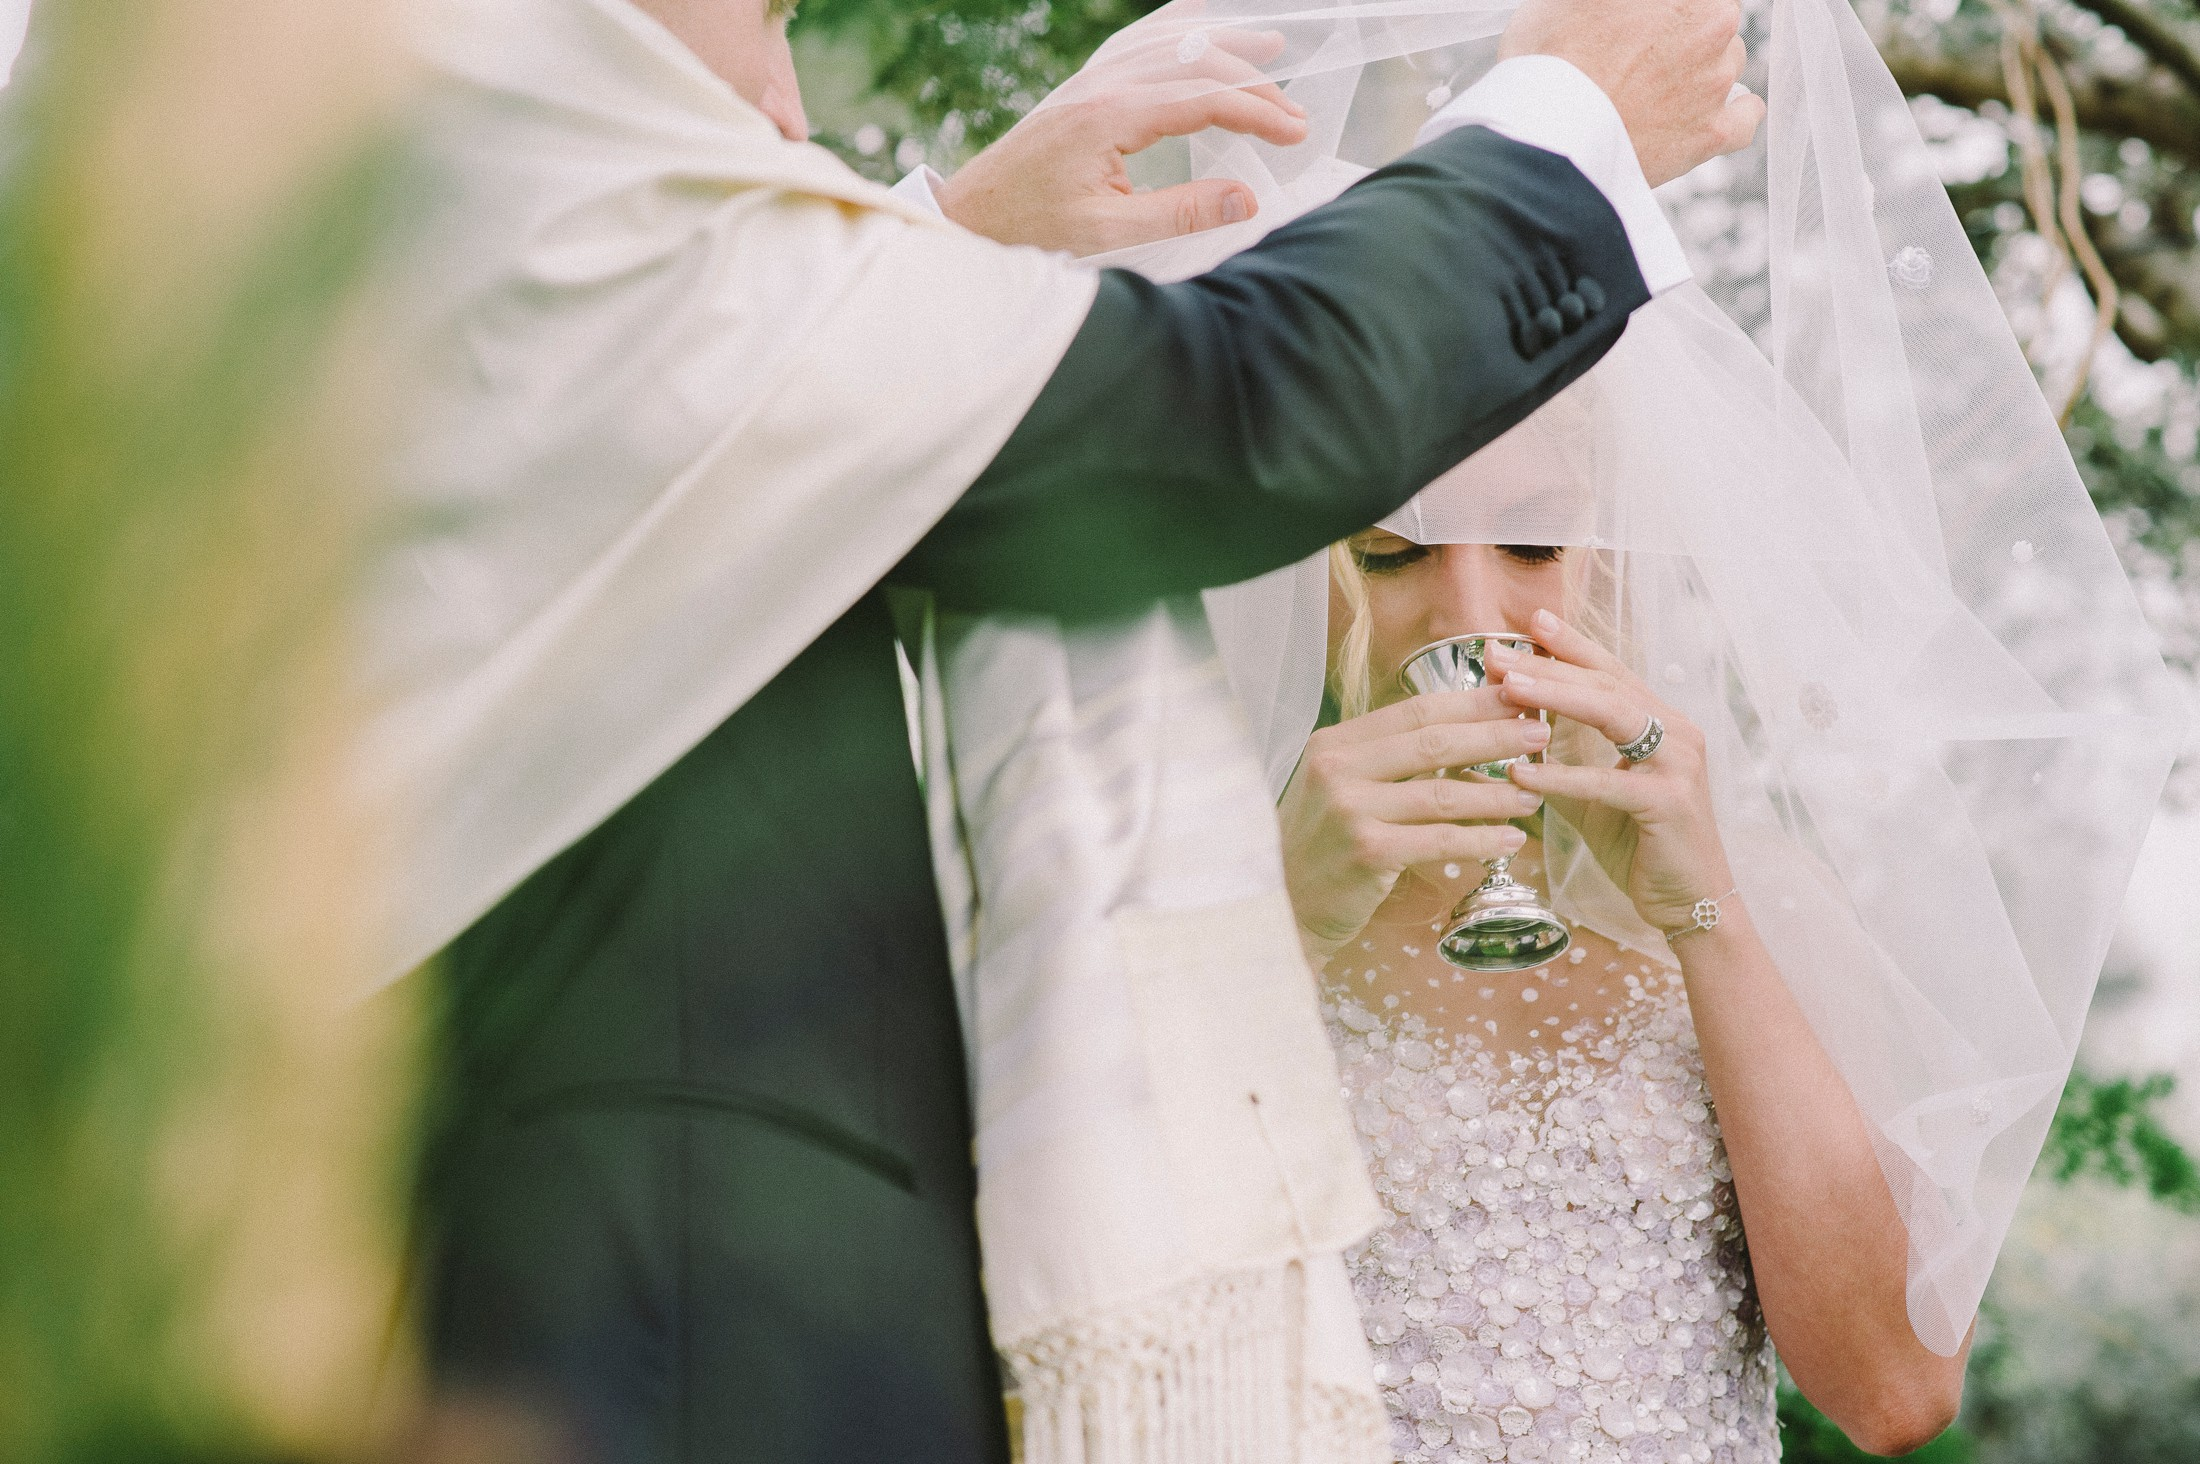 the bride drinks the holy wine